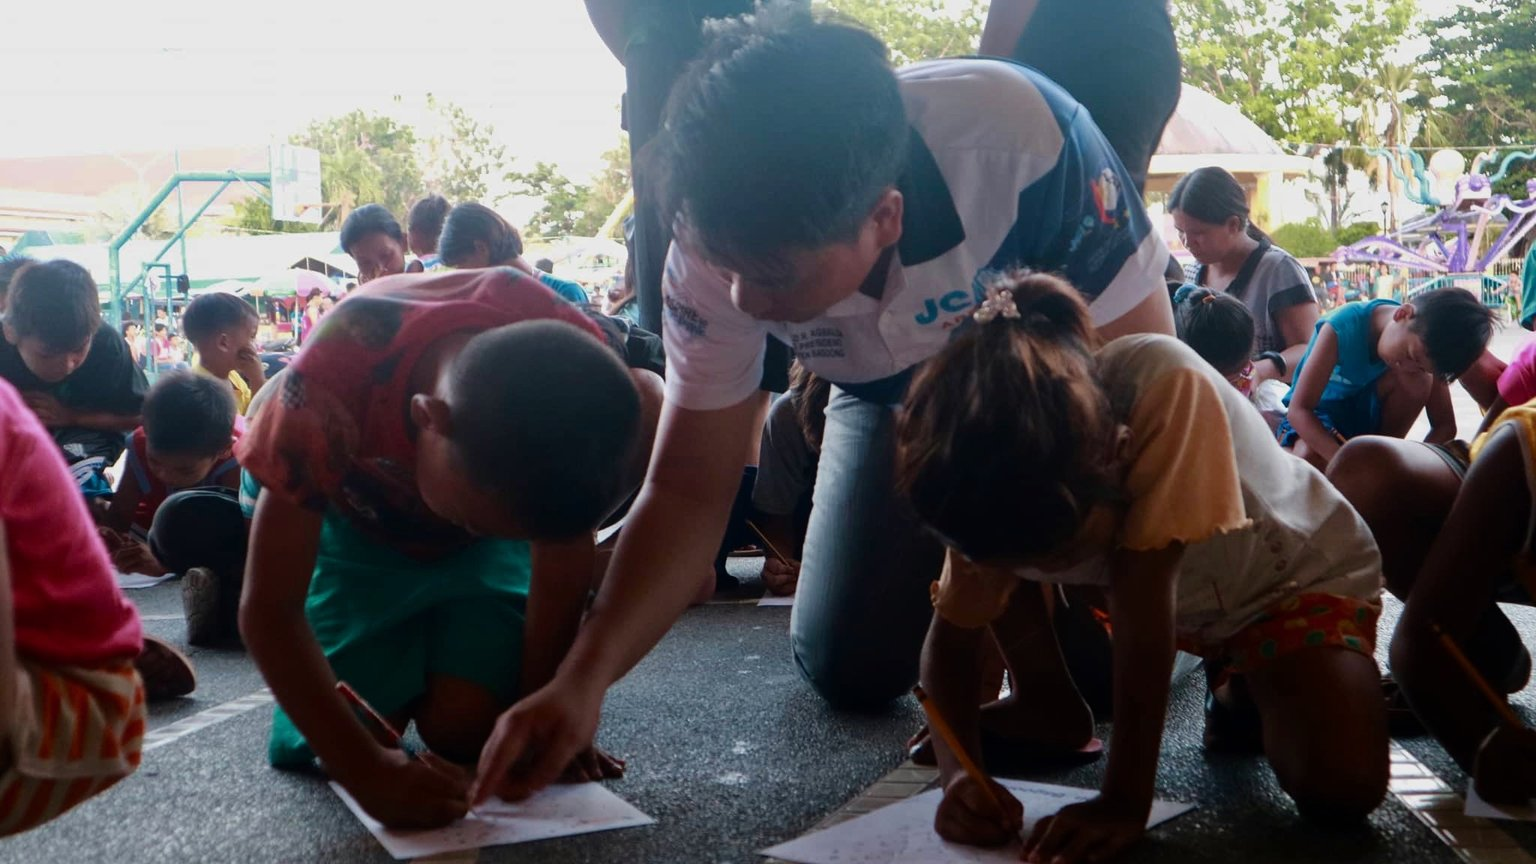 MORE THAN GIFTS. A volunteer in Lingayen, Pangasinan assists kids in writing during an outreach event at the plaza. Photo courtesy of Jerico Samson